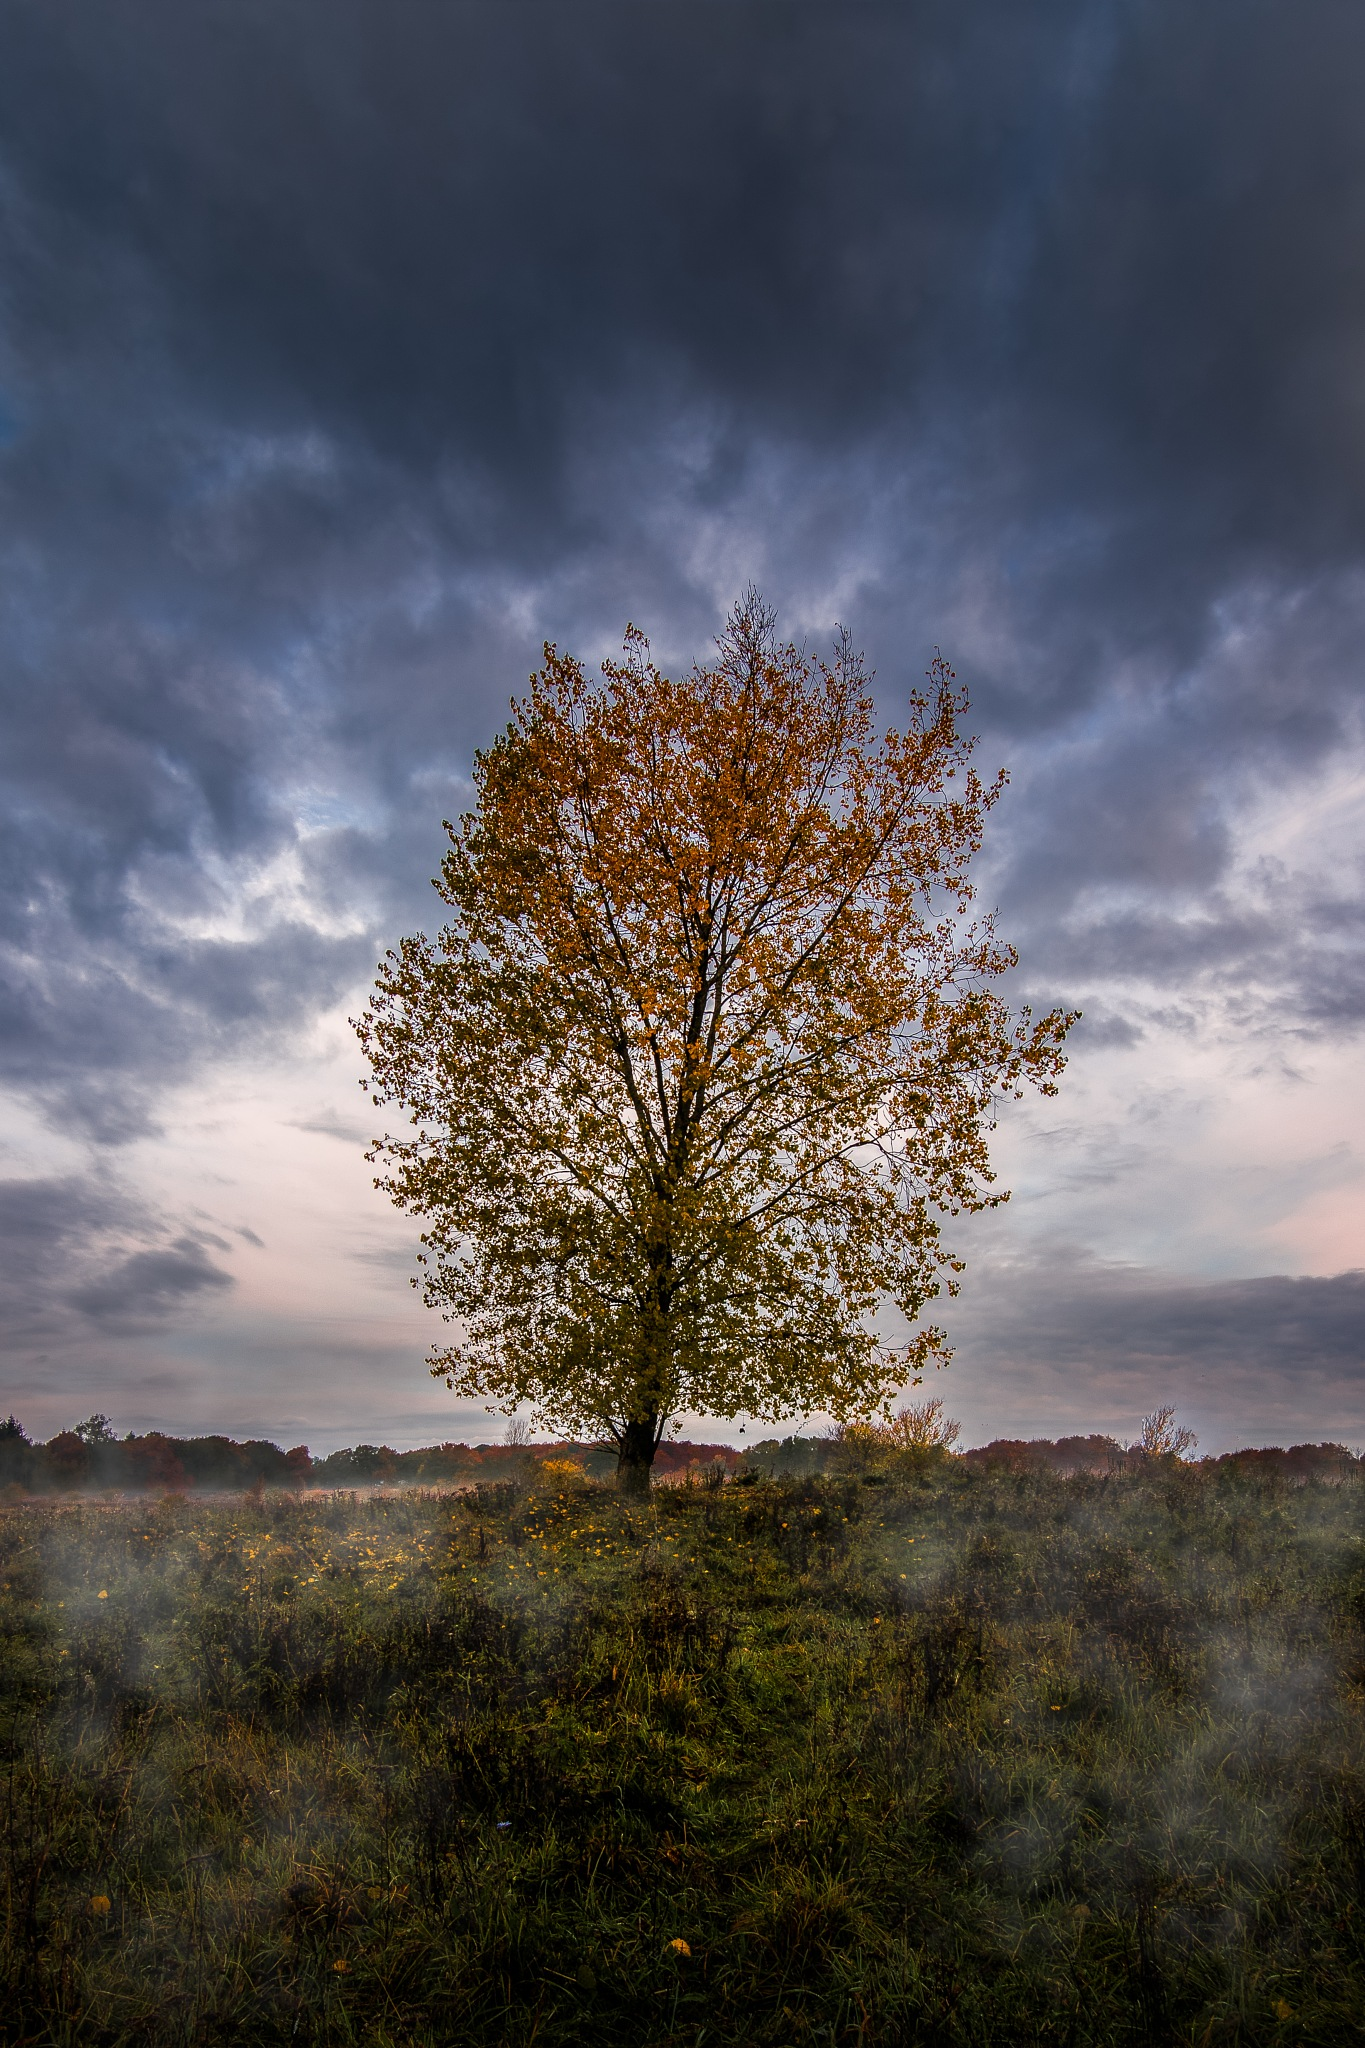 The tree by Michael B. Rasmussen